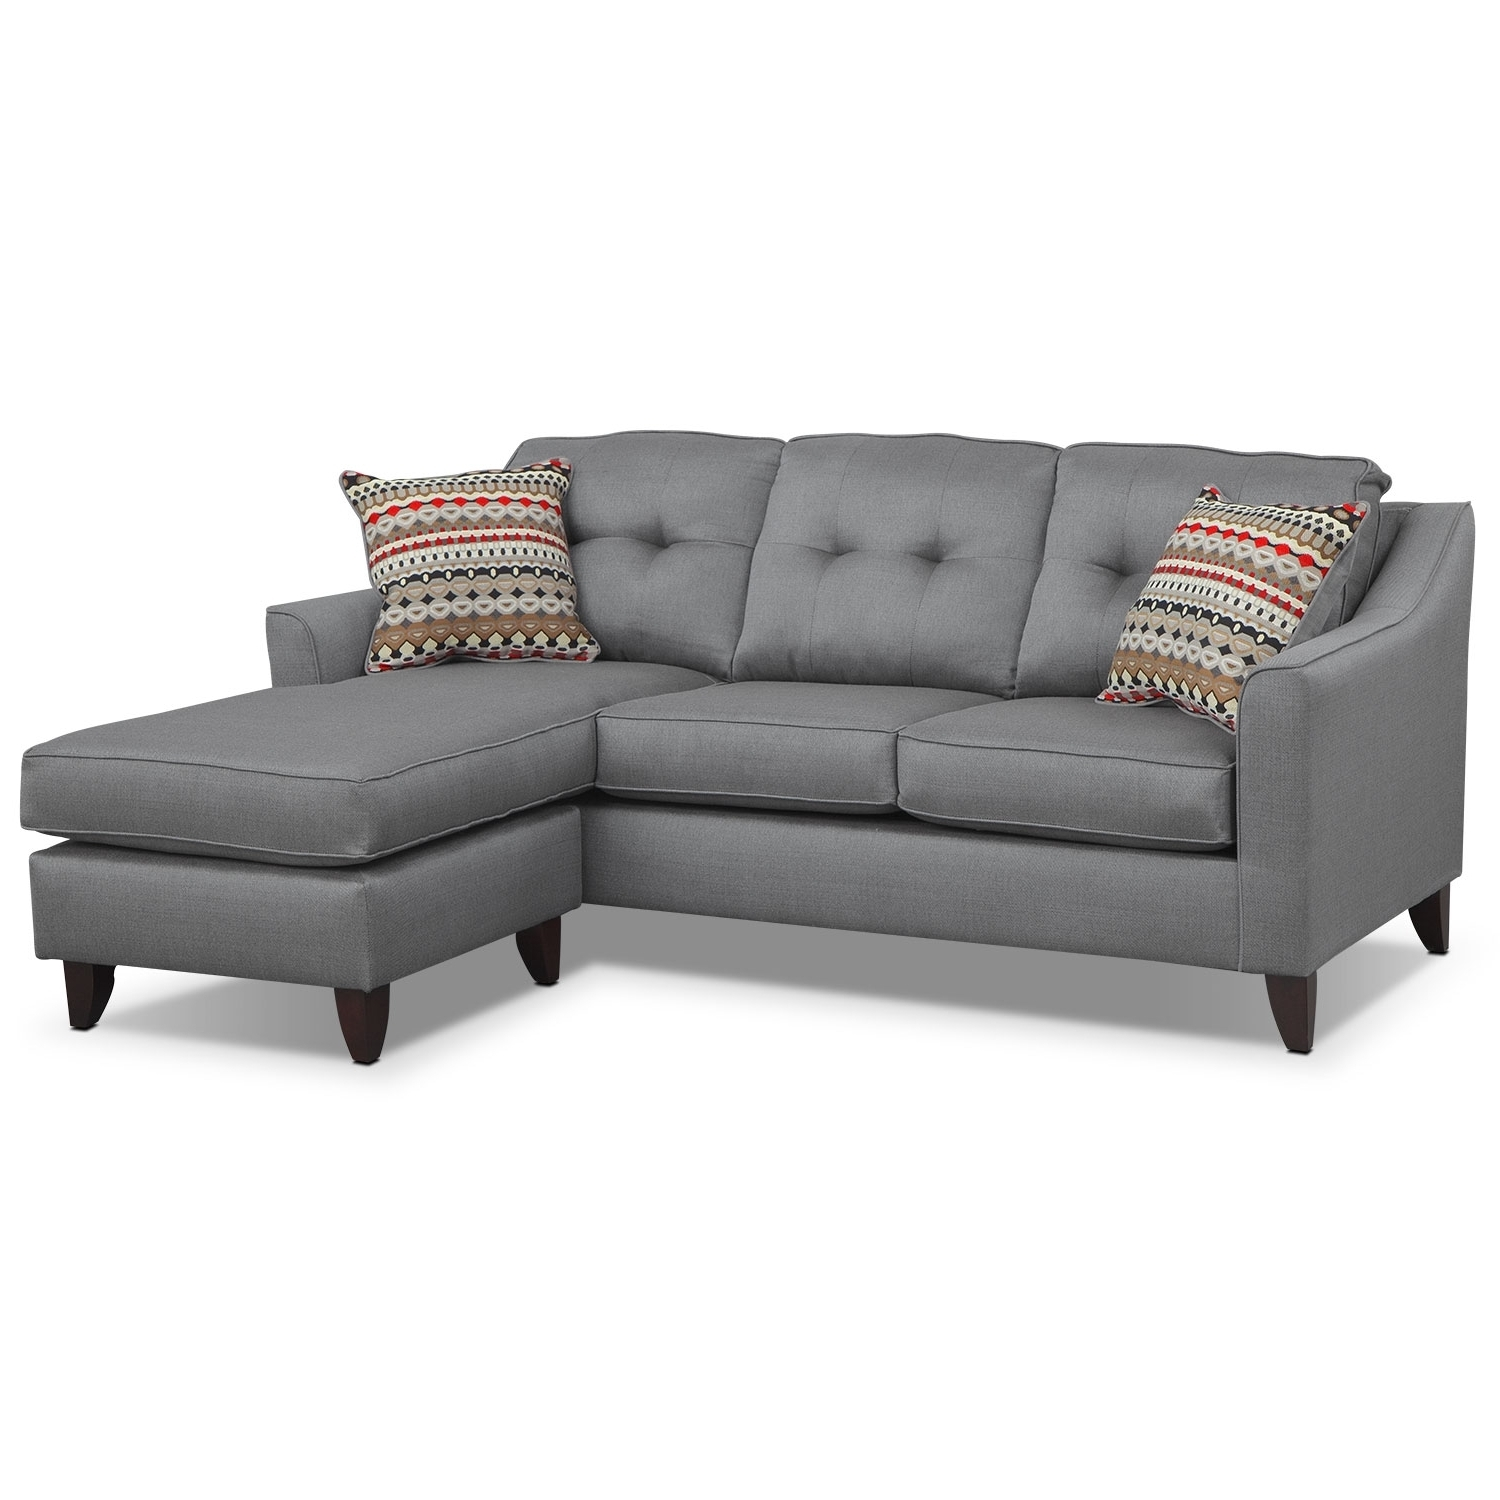 2017 Sofa Design Ideas: Dark Couch Grey Sofa Chaise Light Design Gray Intended For Grey Sofa Chaises (View 4 of 15)